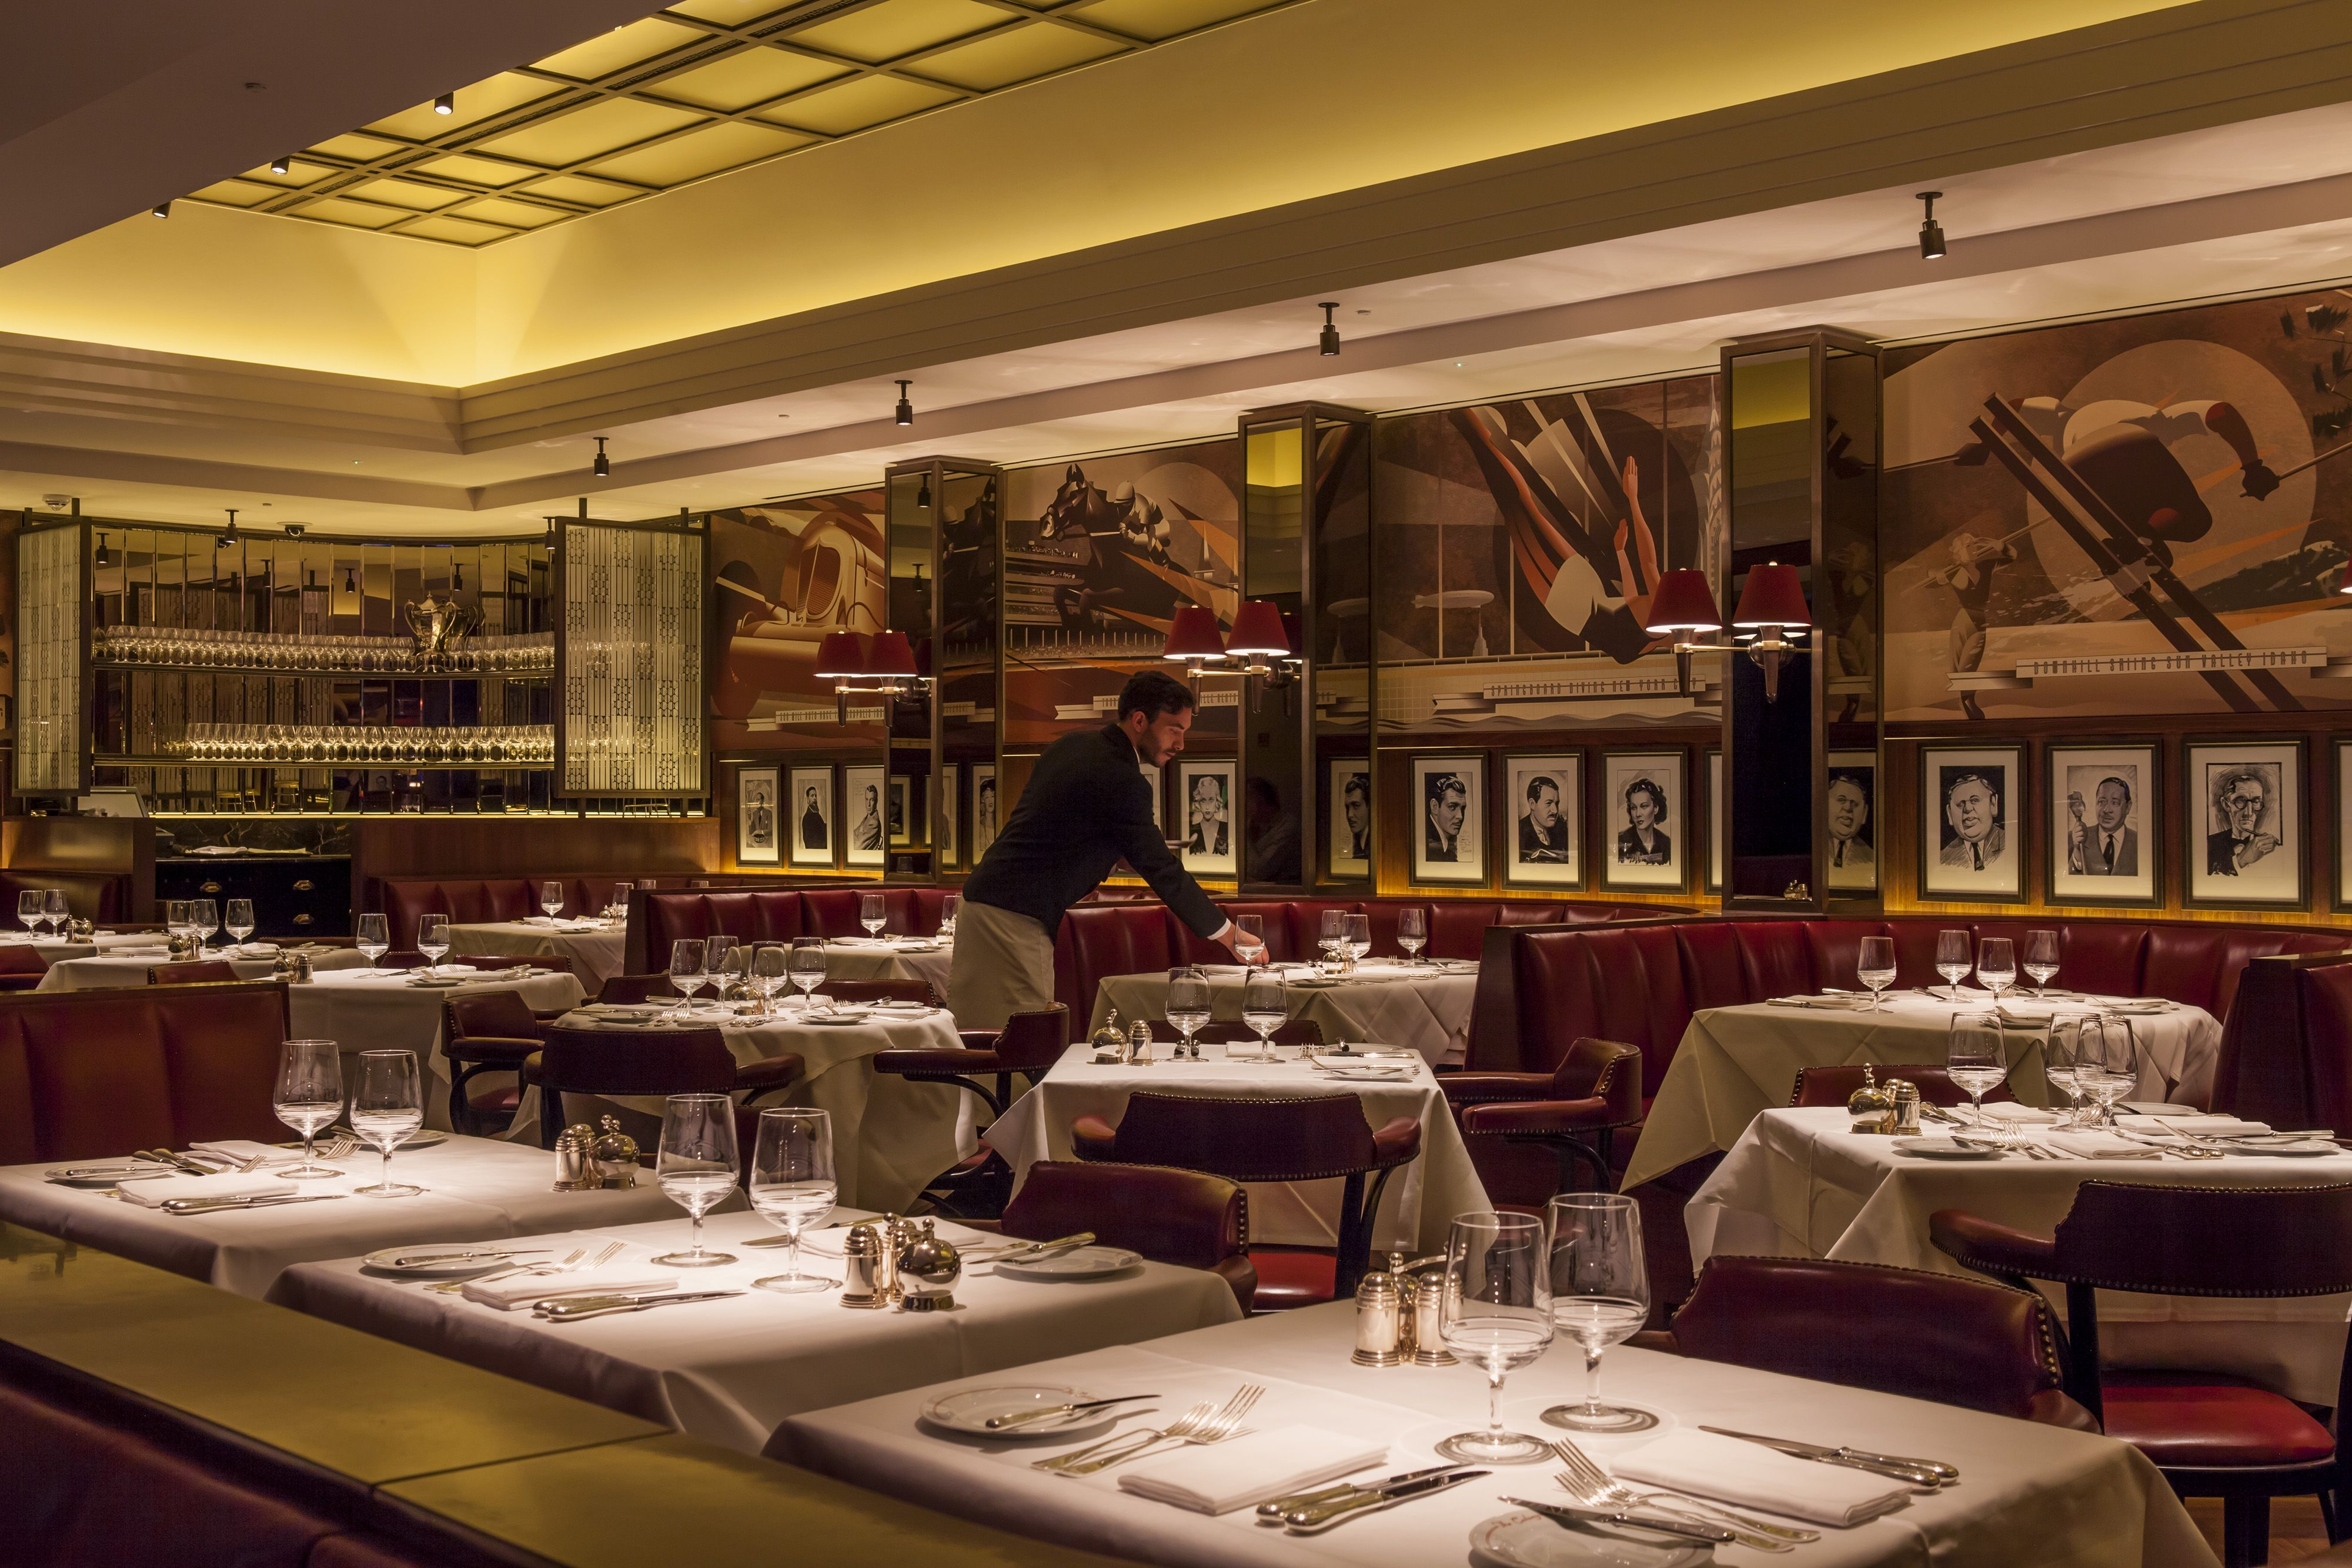 In the heart of the beaumont hotel lies the colony grill